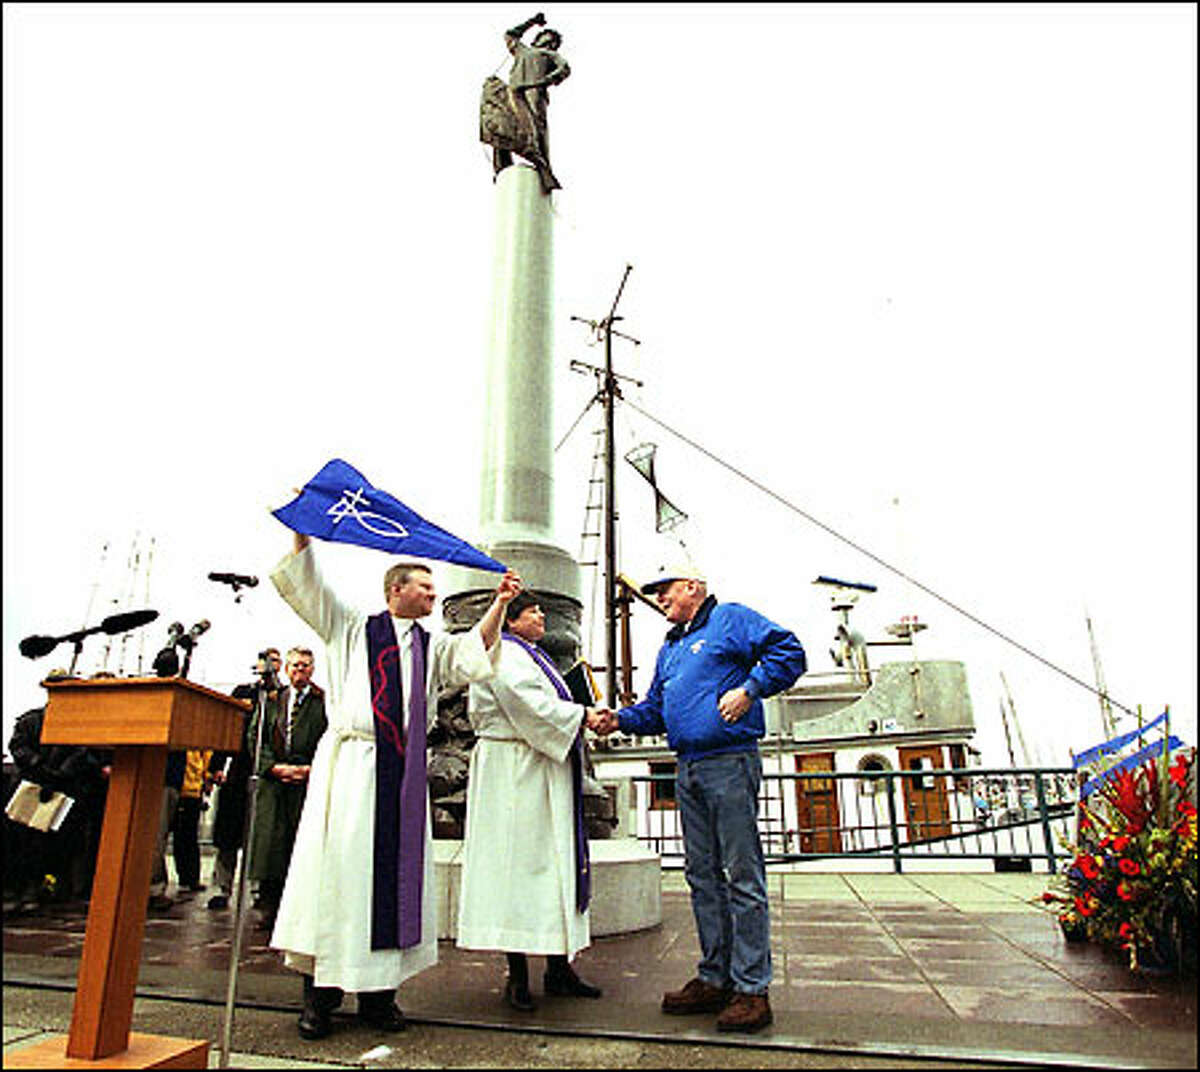 """Pastors Erik Wilson Weiberg, left, and Laurie Jones present a """"Christ pennant"""" to Norman Ness, owner of the Carol M, seen in the background. The Blessing of the Fleet was held yesterday at Fishermen's Terminal."""